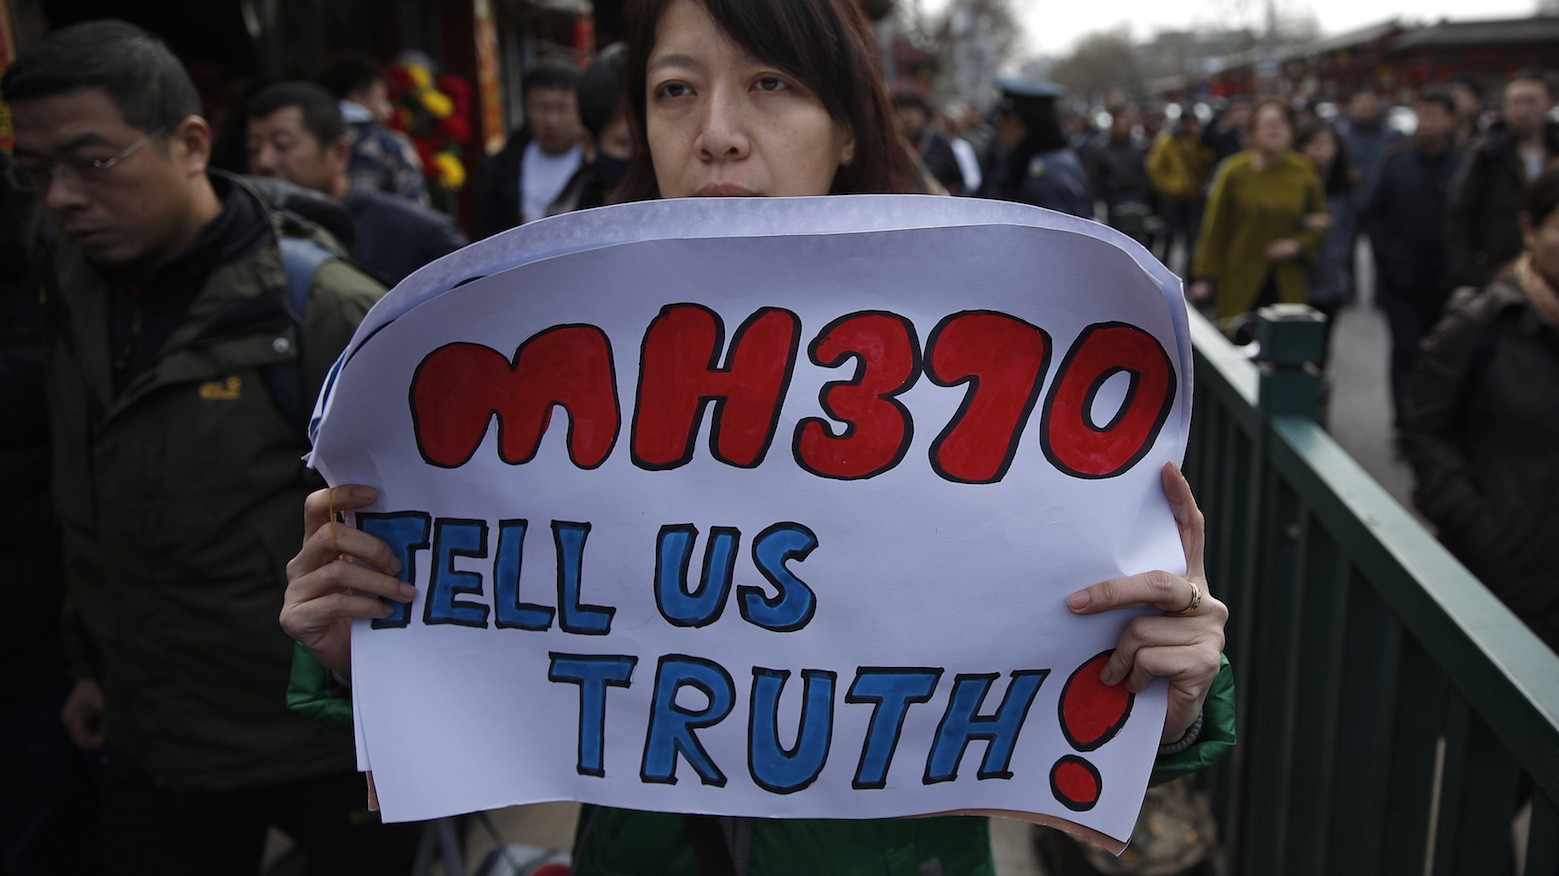 Airliner Debris Found in Mozambique Being Investigated as Possible MH370 Wreckage